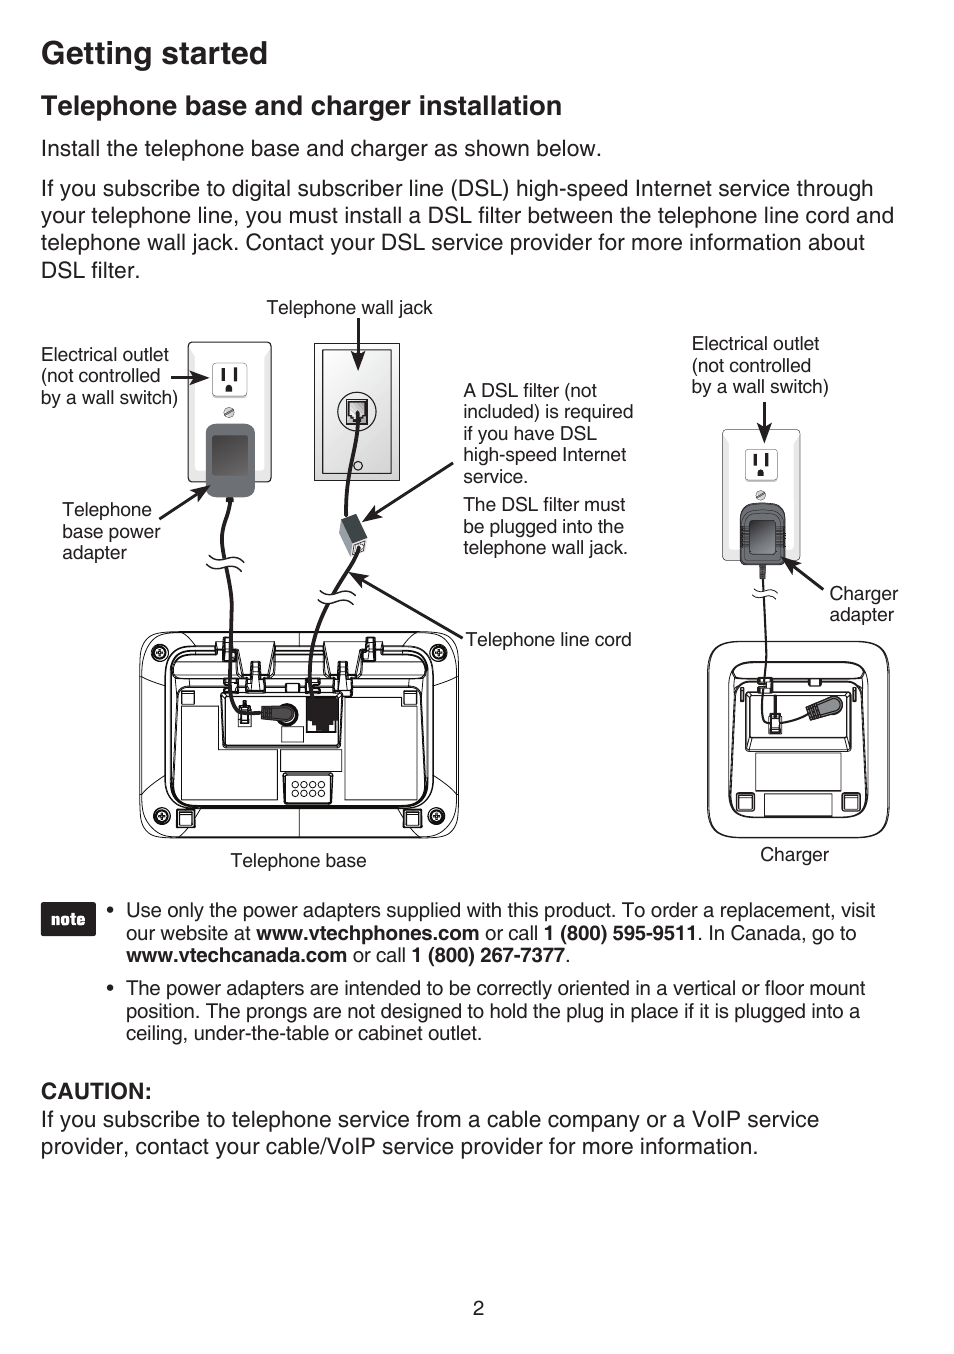 hight resolution of telephone base and charger installation telephone base and charger installation vtech cs6829 manual user manual page 6 84